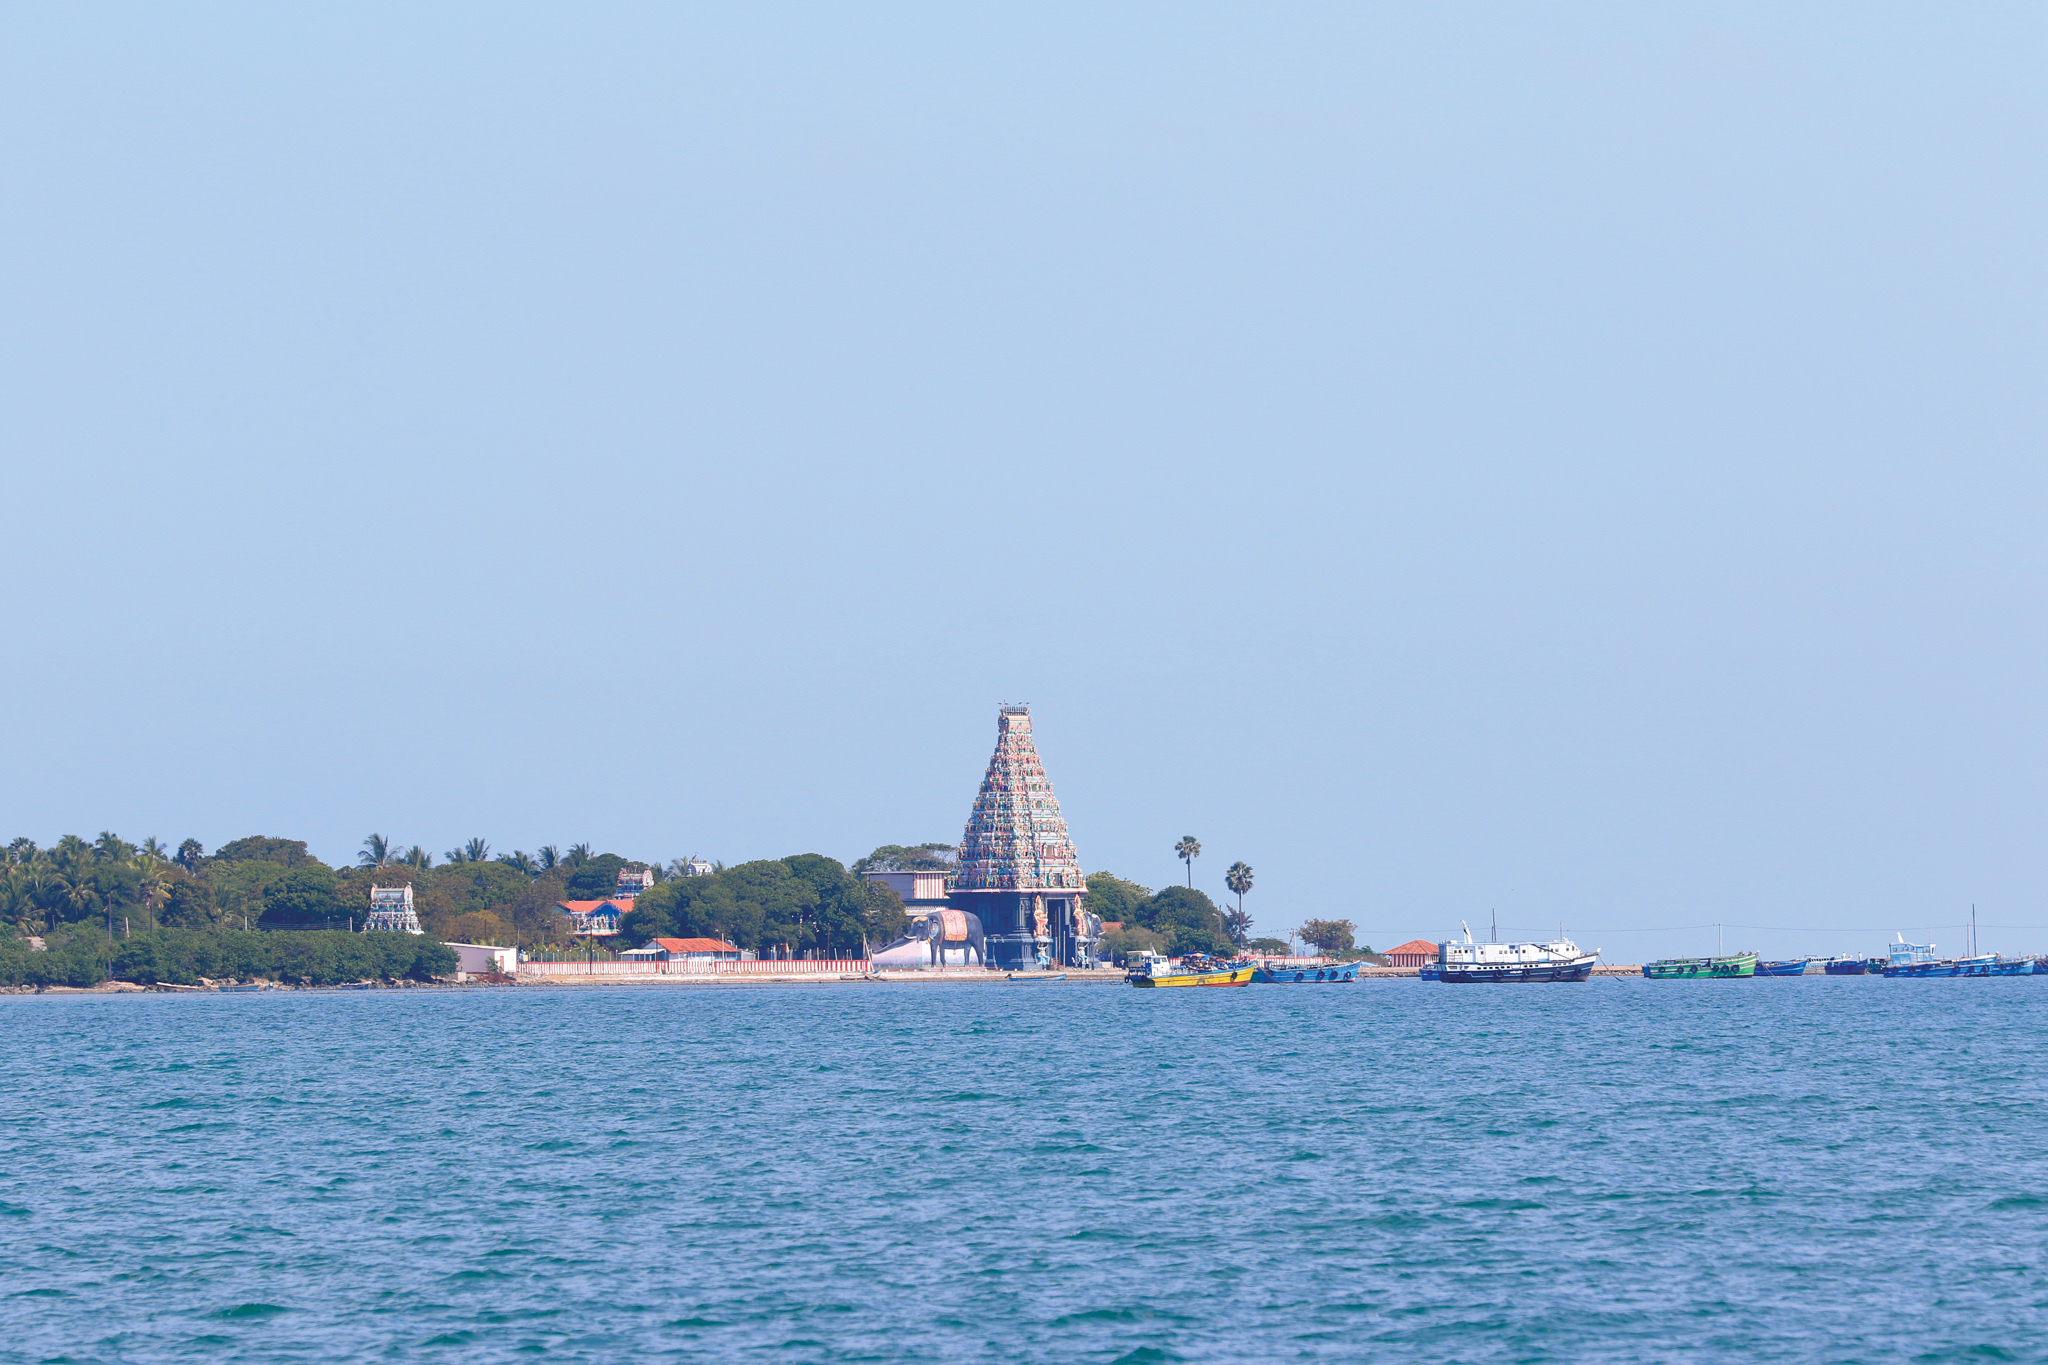 Take a boat to the Island of Nainativu (Nagapooshani Amman Kovil Festival)